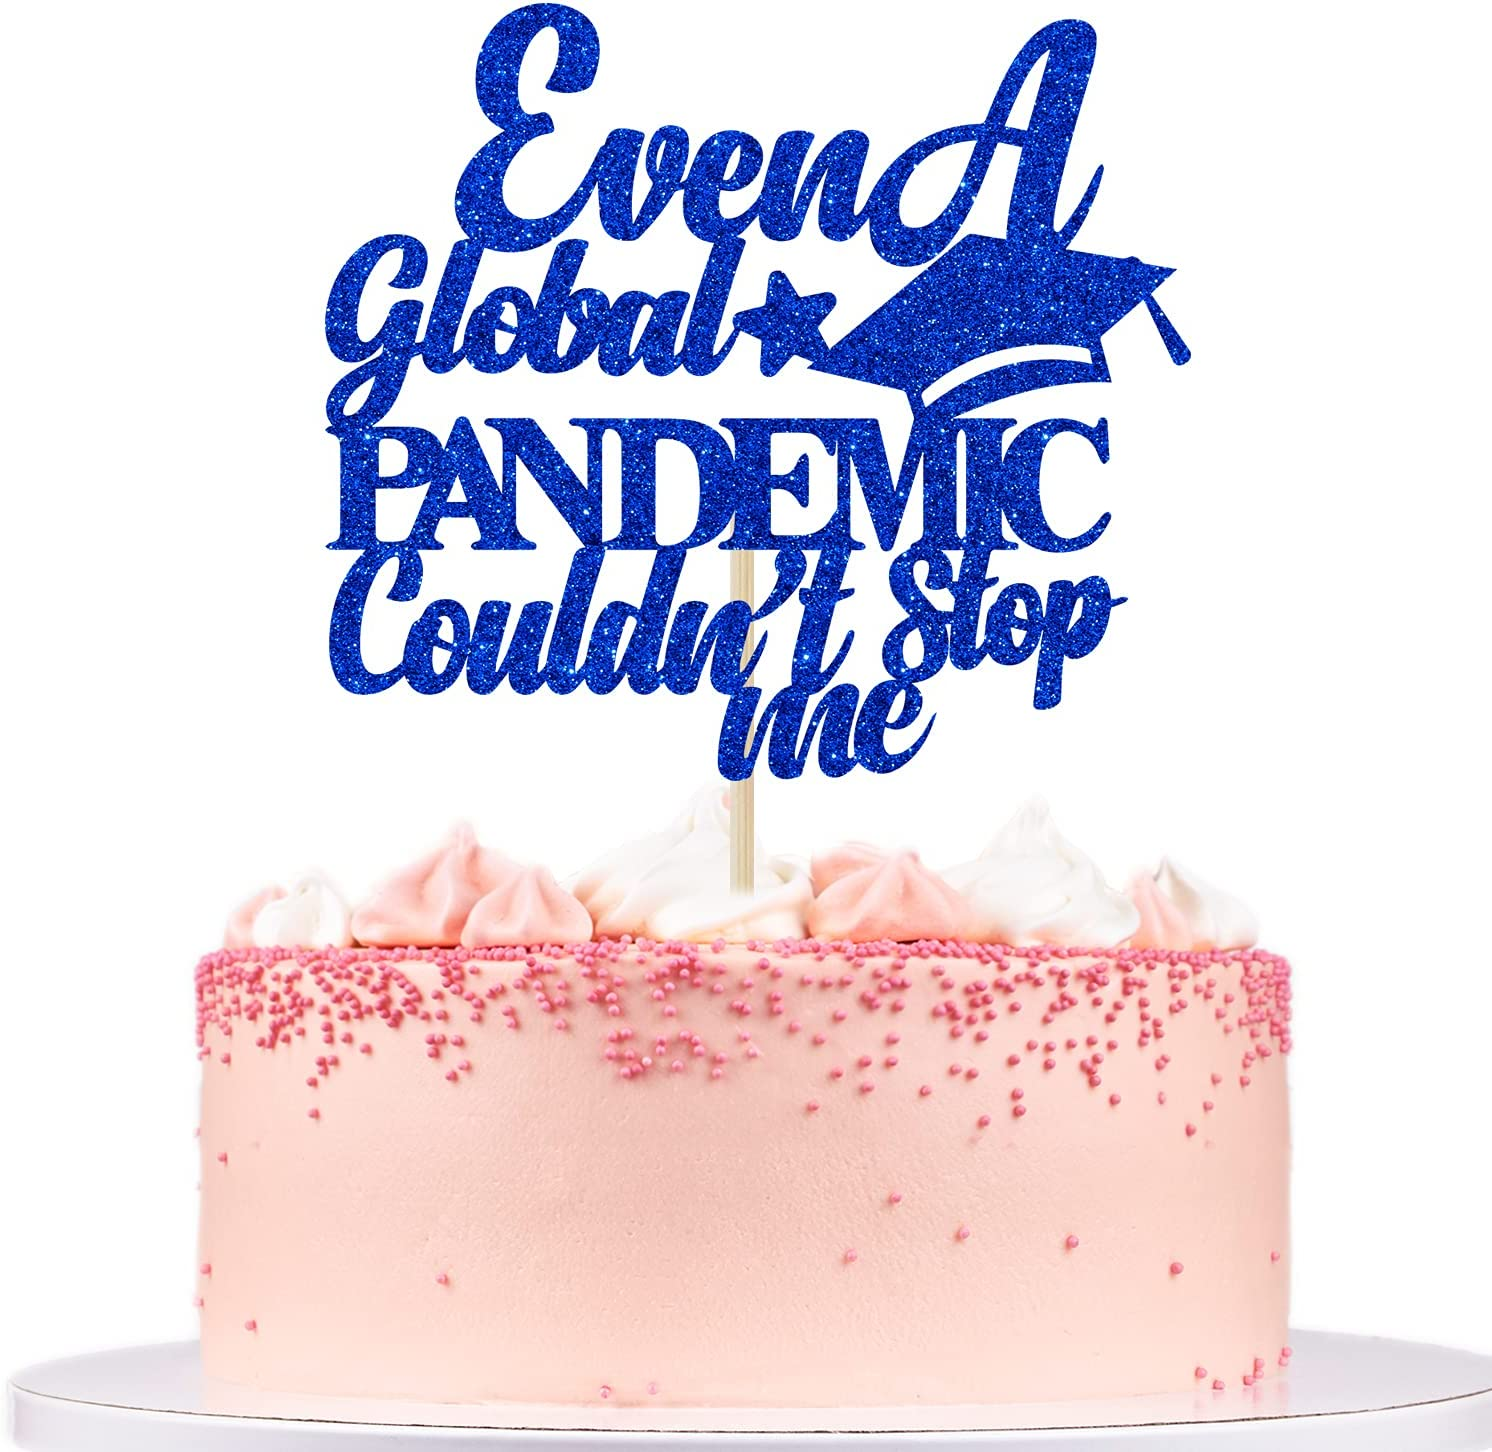 Blue Glitter New product Even A Global Pandemic Cake Stop Me Couldn't T High quality